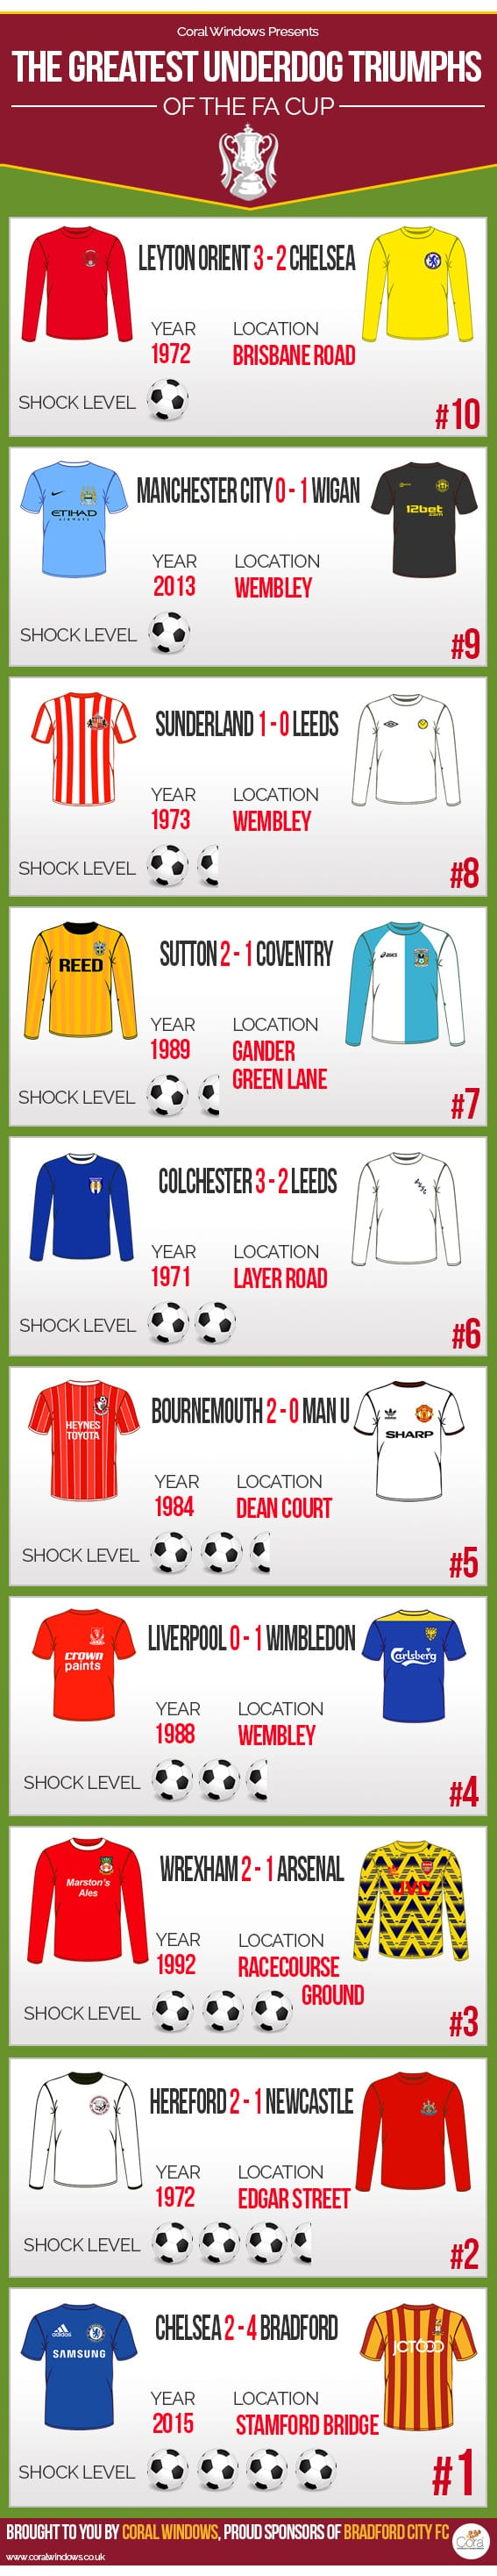 Coral Windows Presents The Greatest Underdog Triumphs of the FA Cup